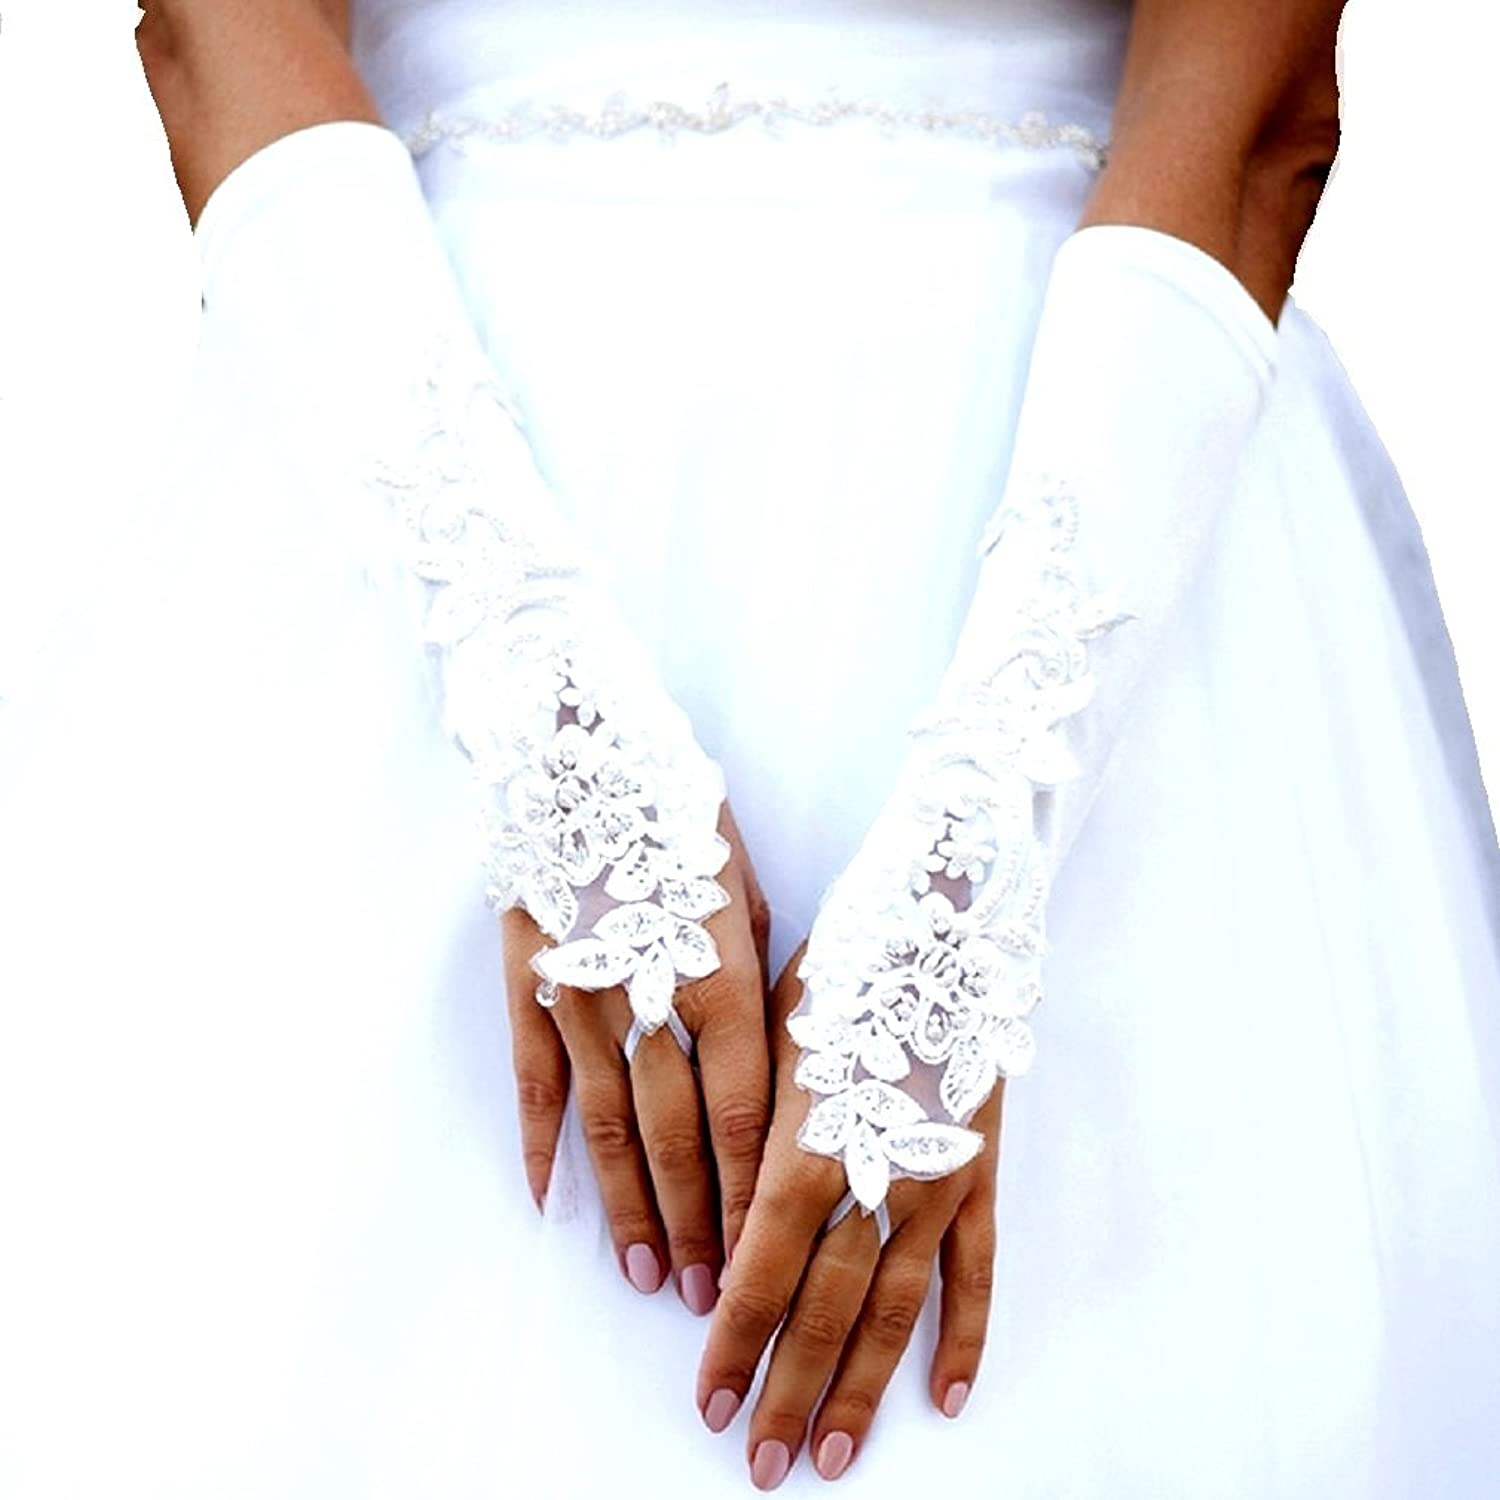 8c1135d2cdd3c Women's White Satin Lace Flower Fingerless Bridal Gloves Wedding Party  Brides Prom